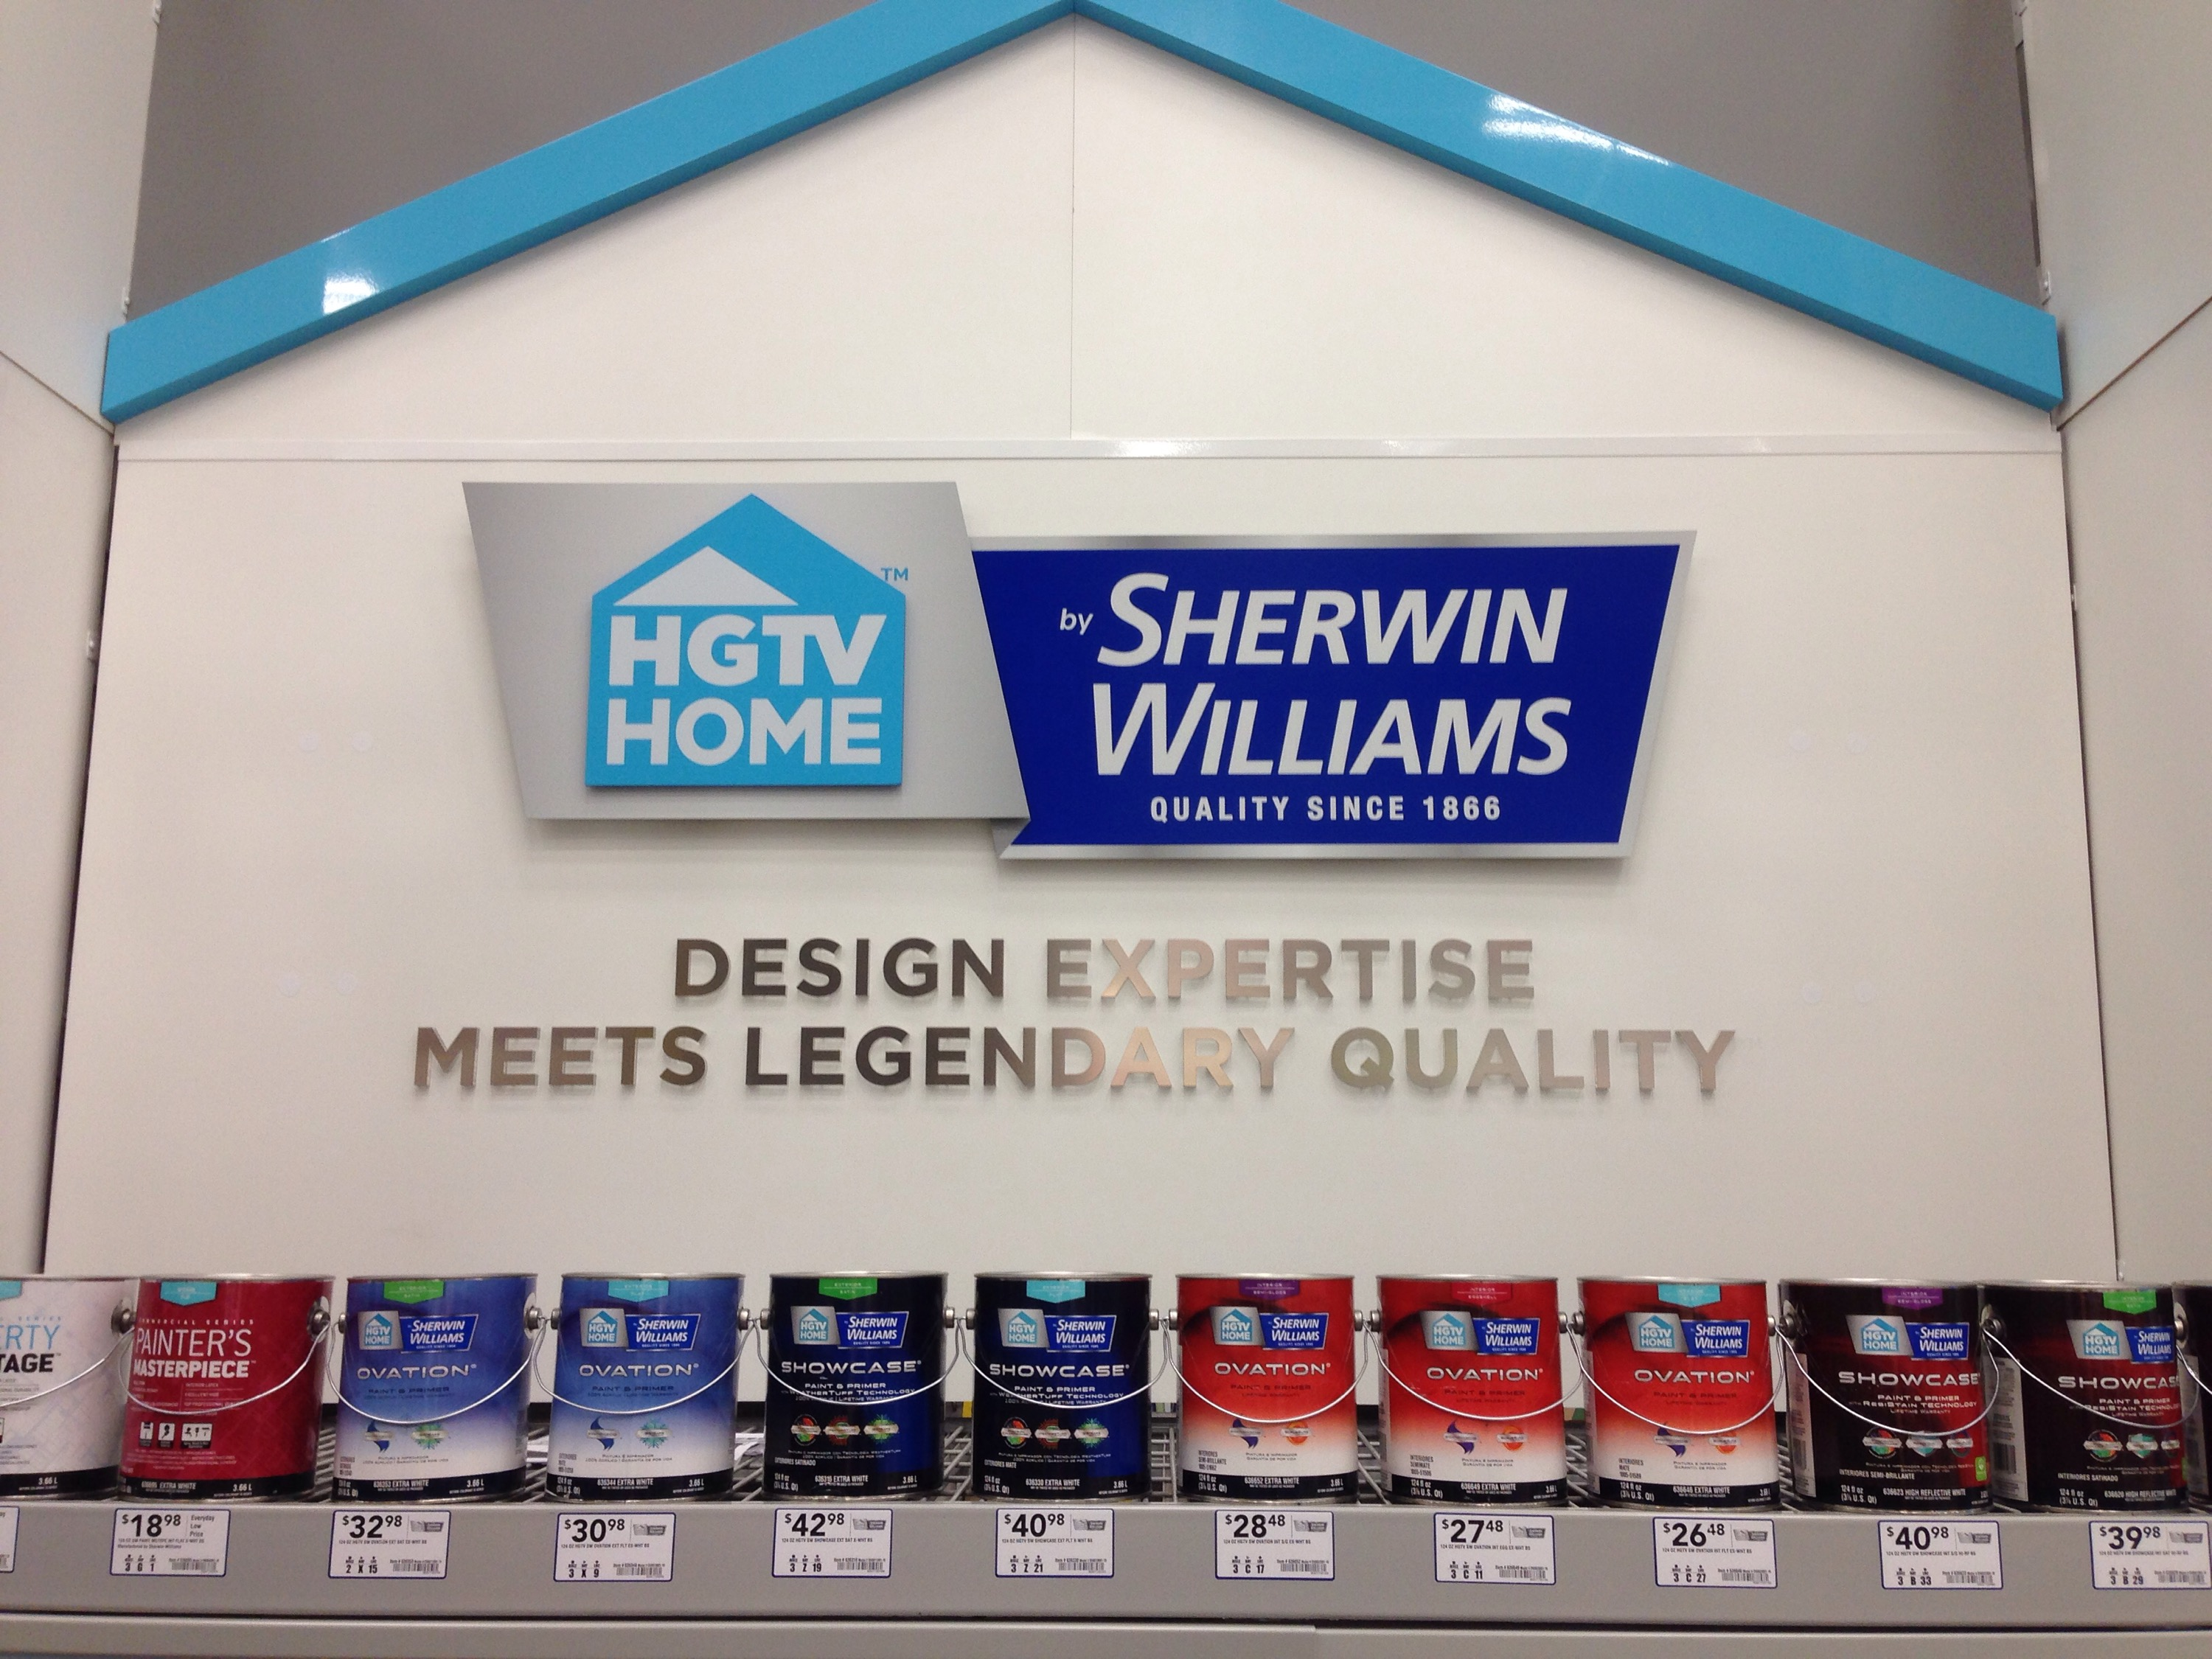 hgtv home paint collections by sherwin williams at lowe u2019s